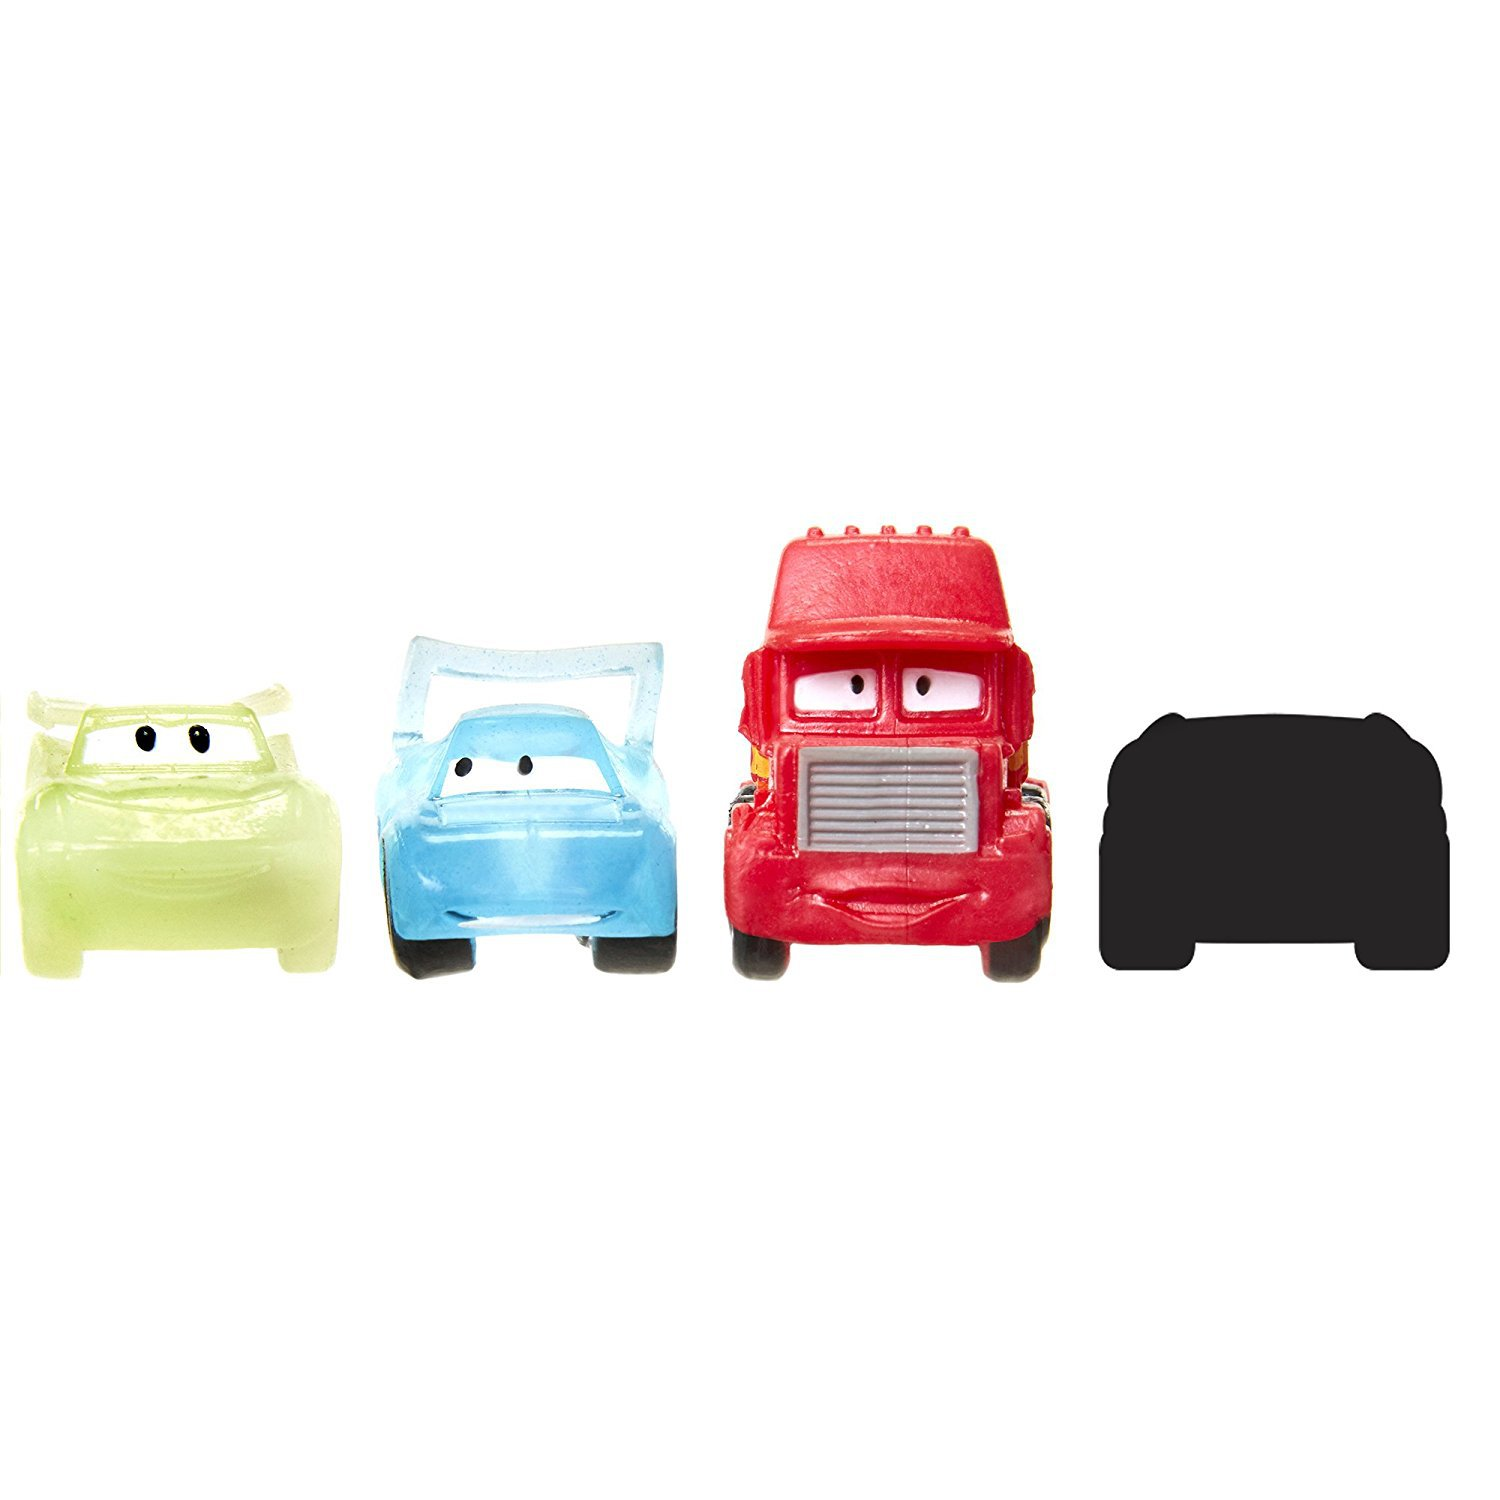 "Ooshies Set 4 Disney Cars 3 Series 1"" Action Figure (4 Pack) Pencil Toppers"